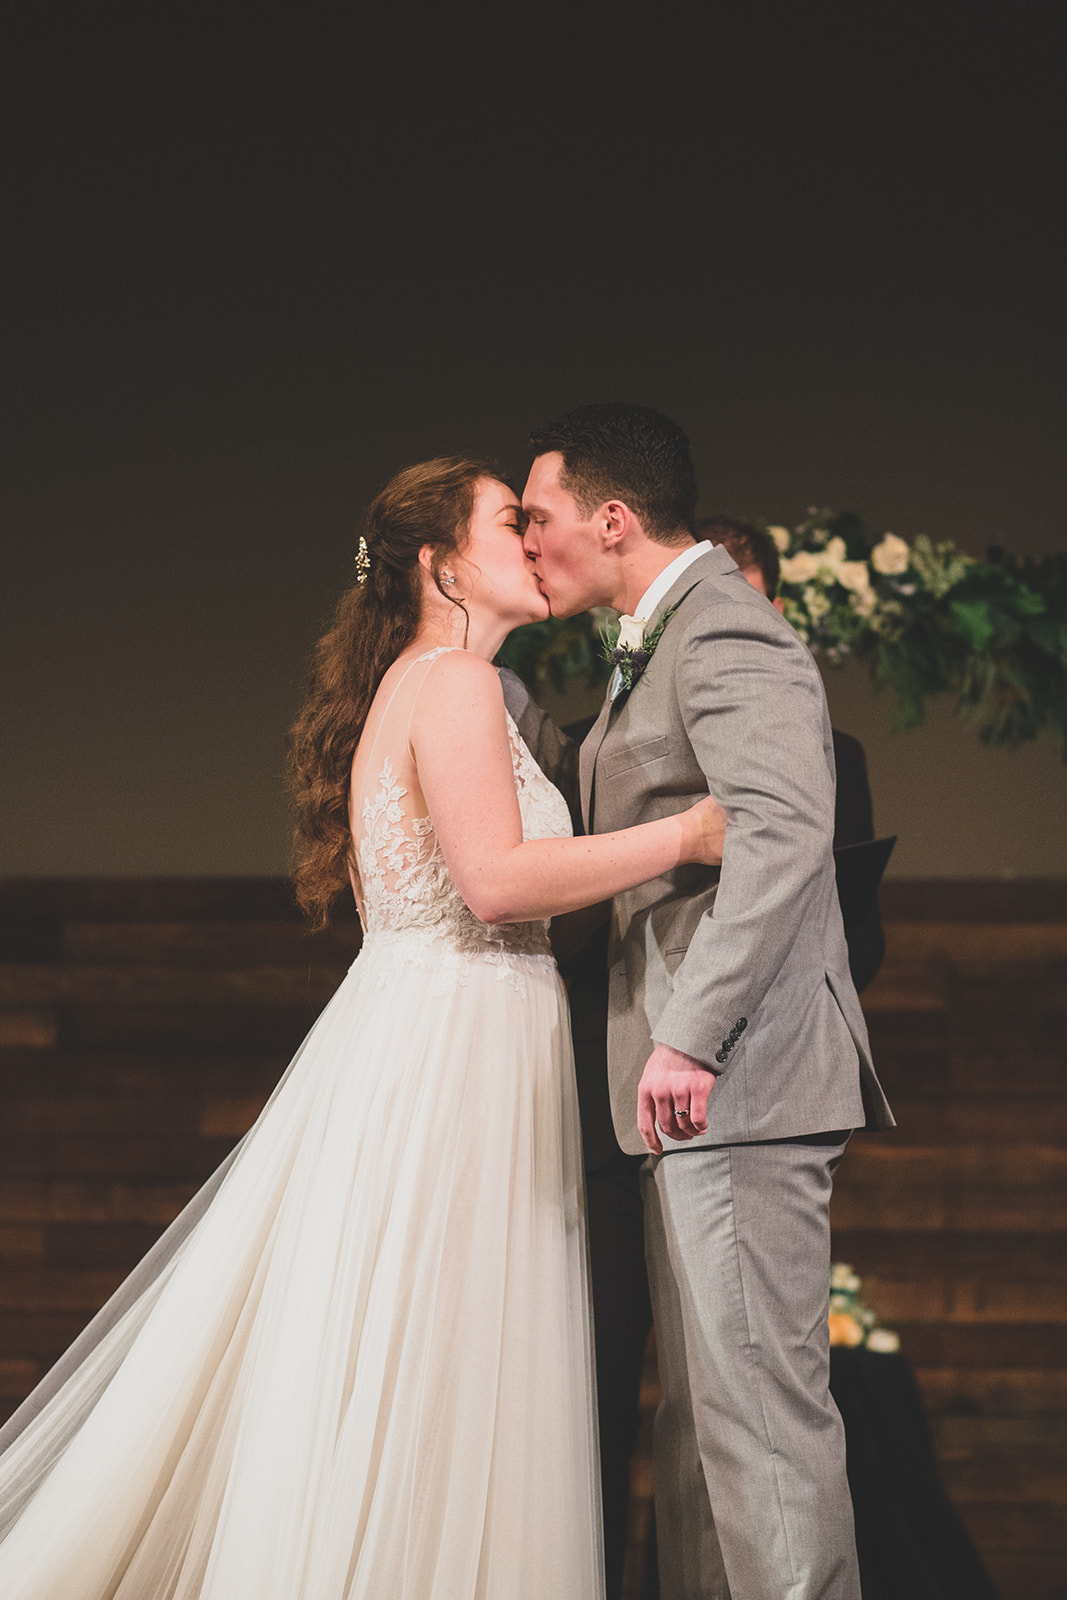 first kiss ceremony spokane wedding bride and groom